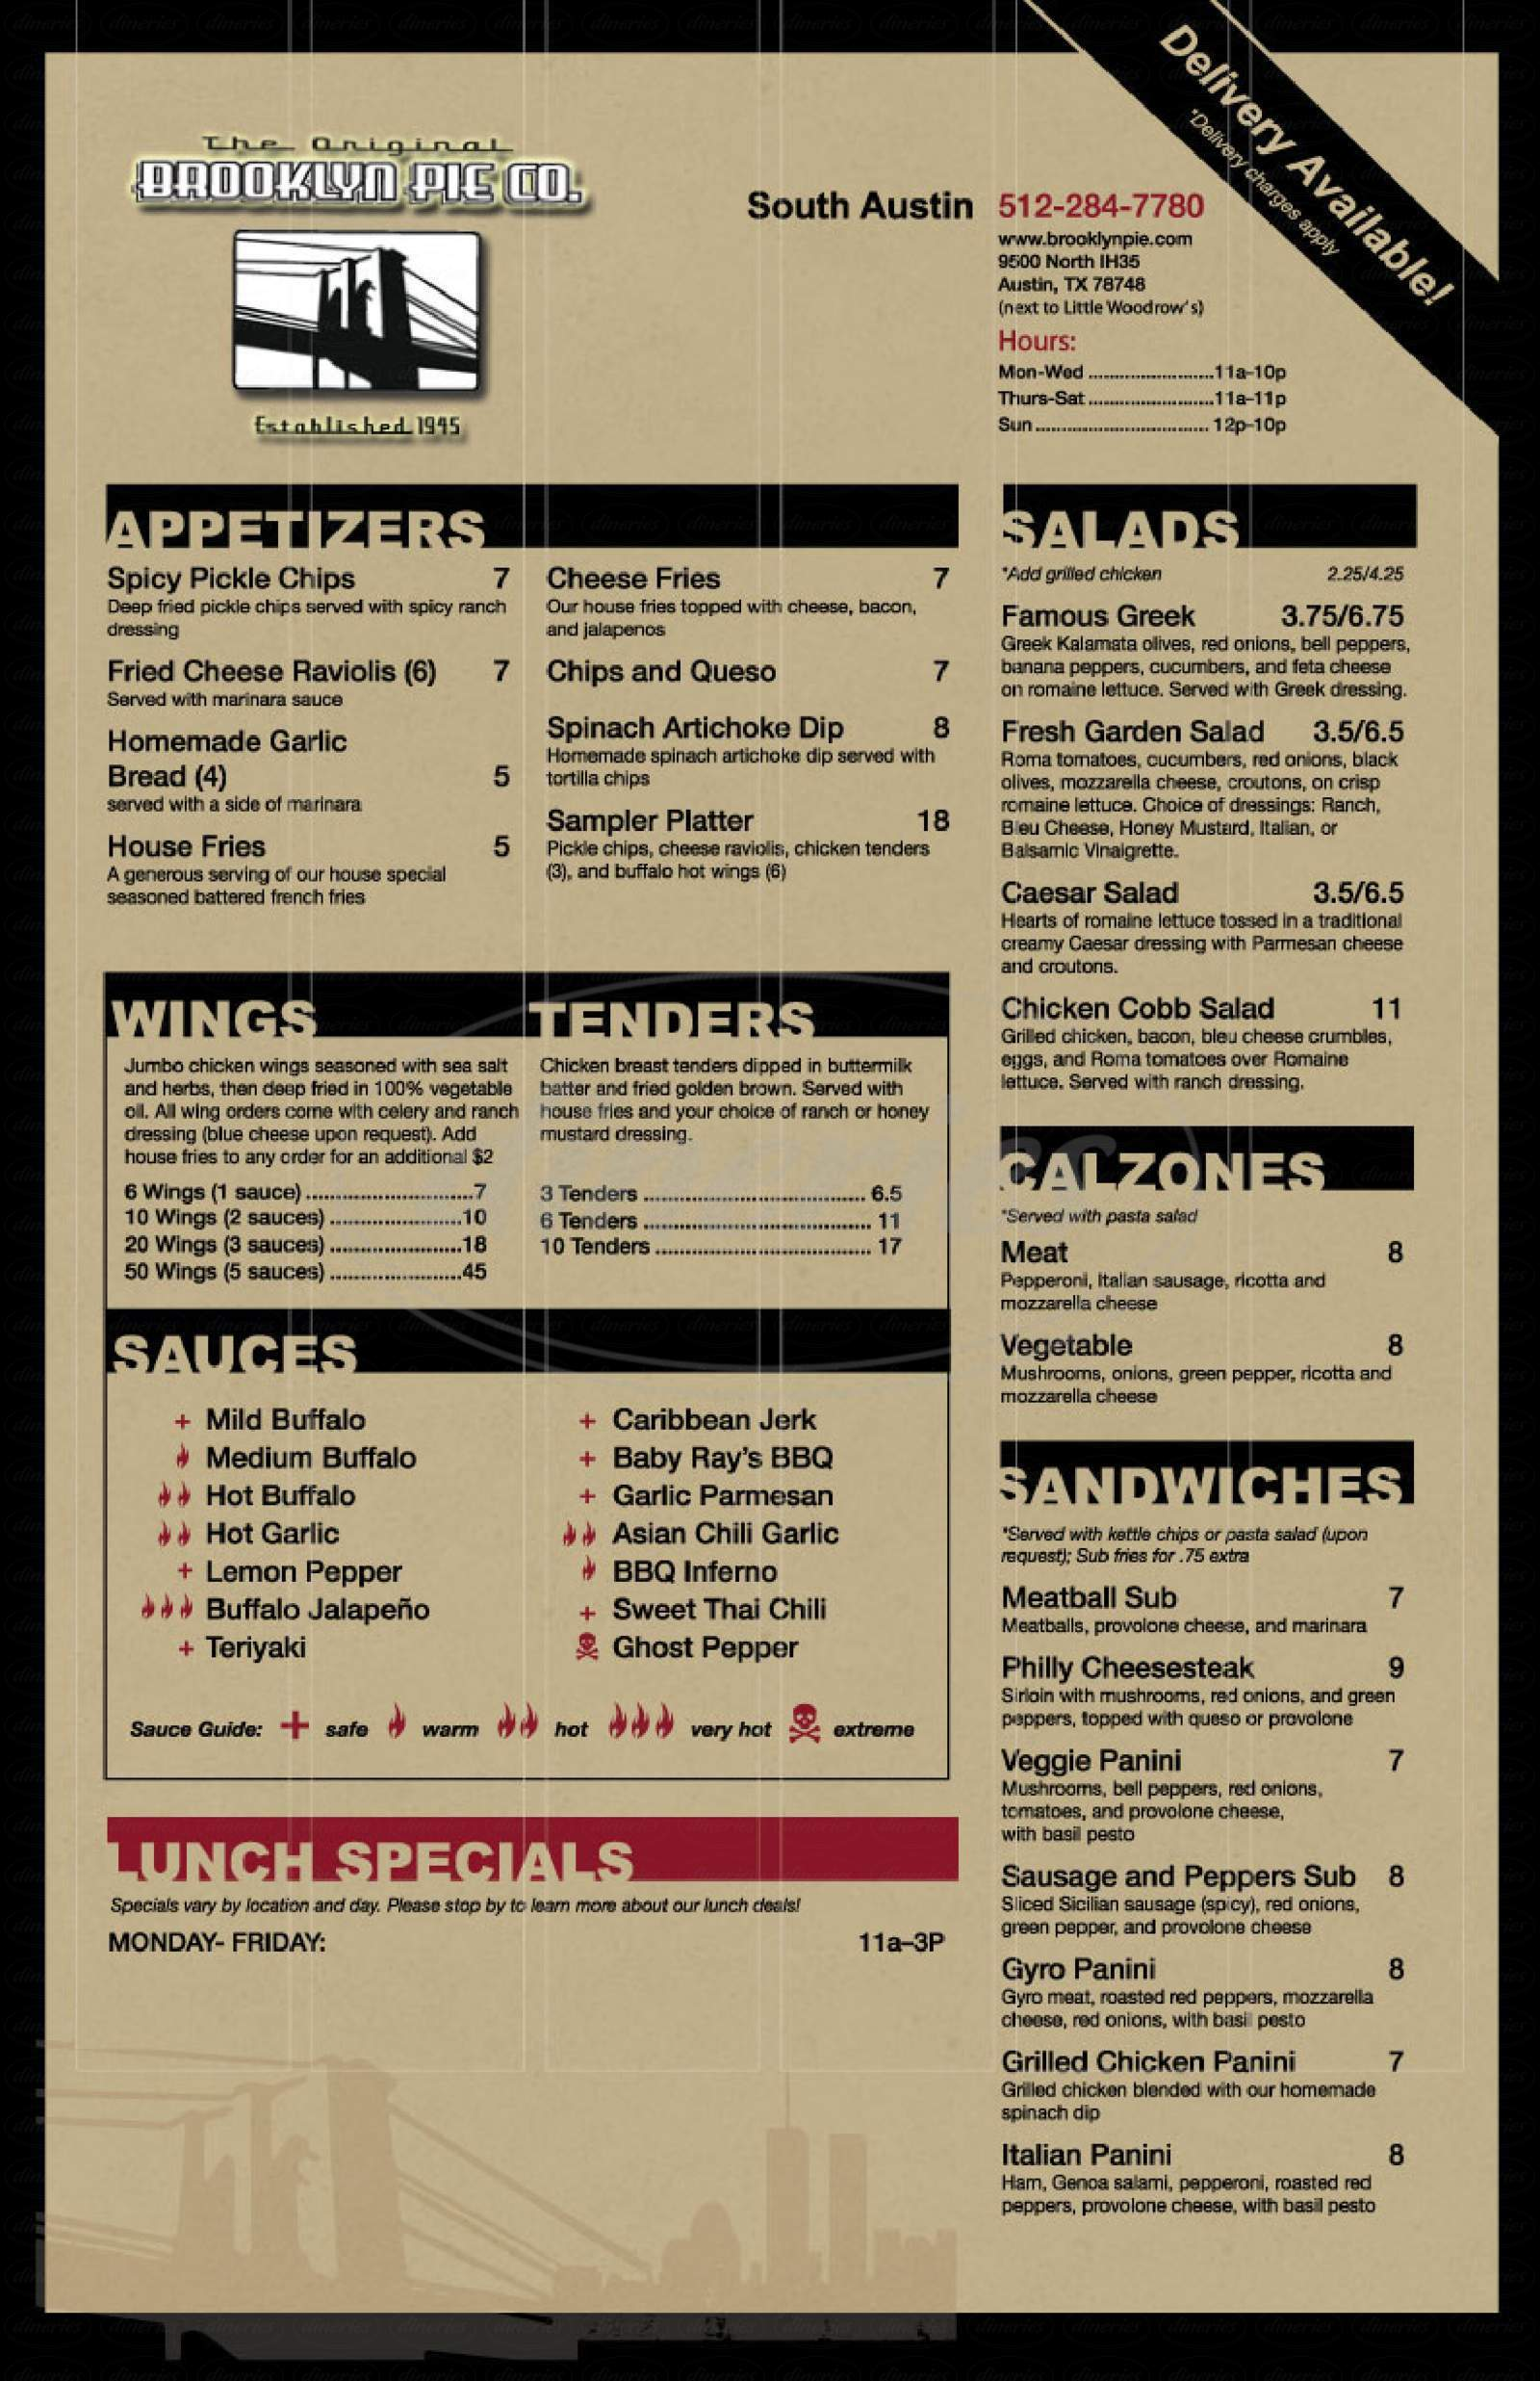 menu for Brooklyn Pie Co.